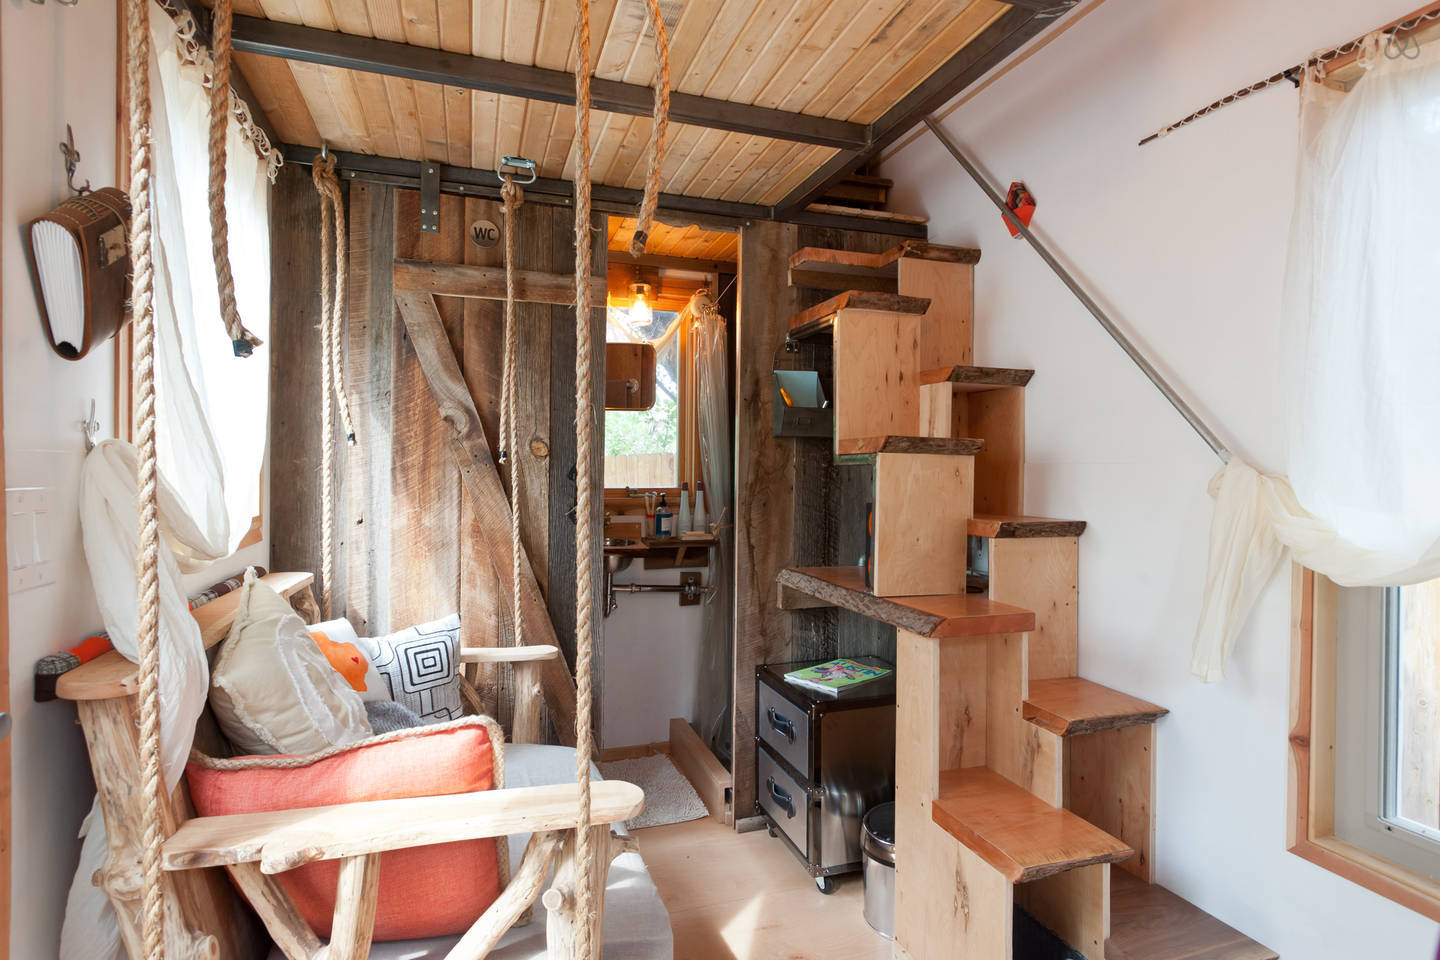 Tiny Home Interior Mesmerizing 16 Tiny Houses You Wish You Could Live In